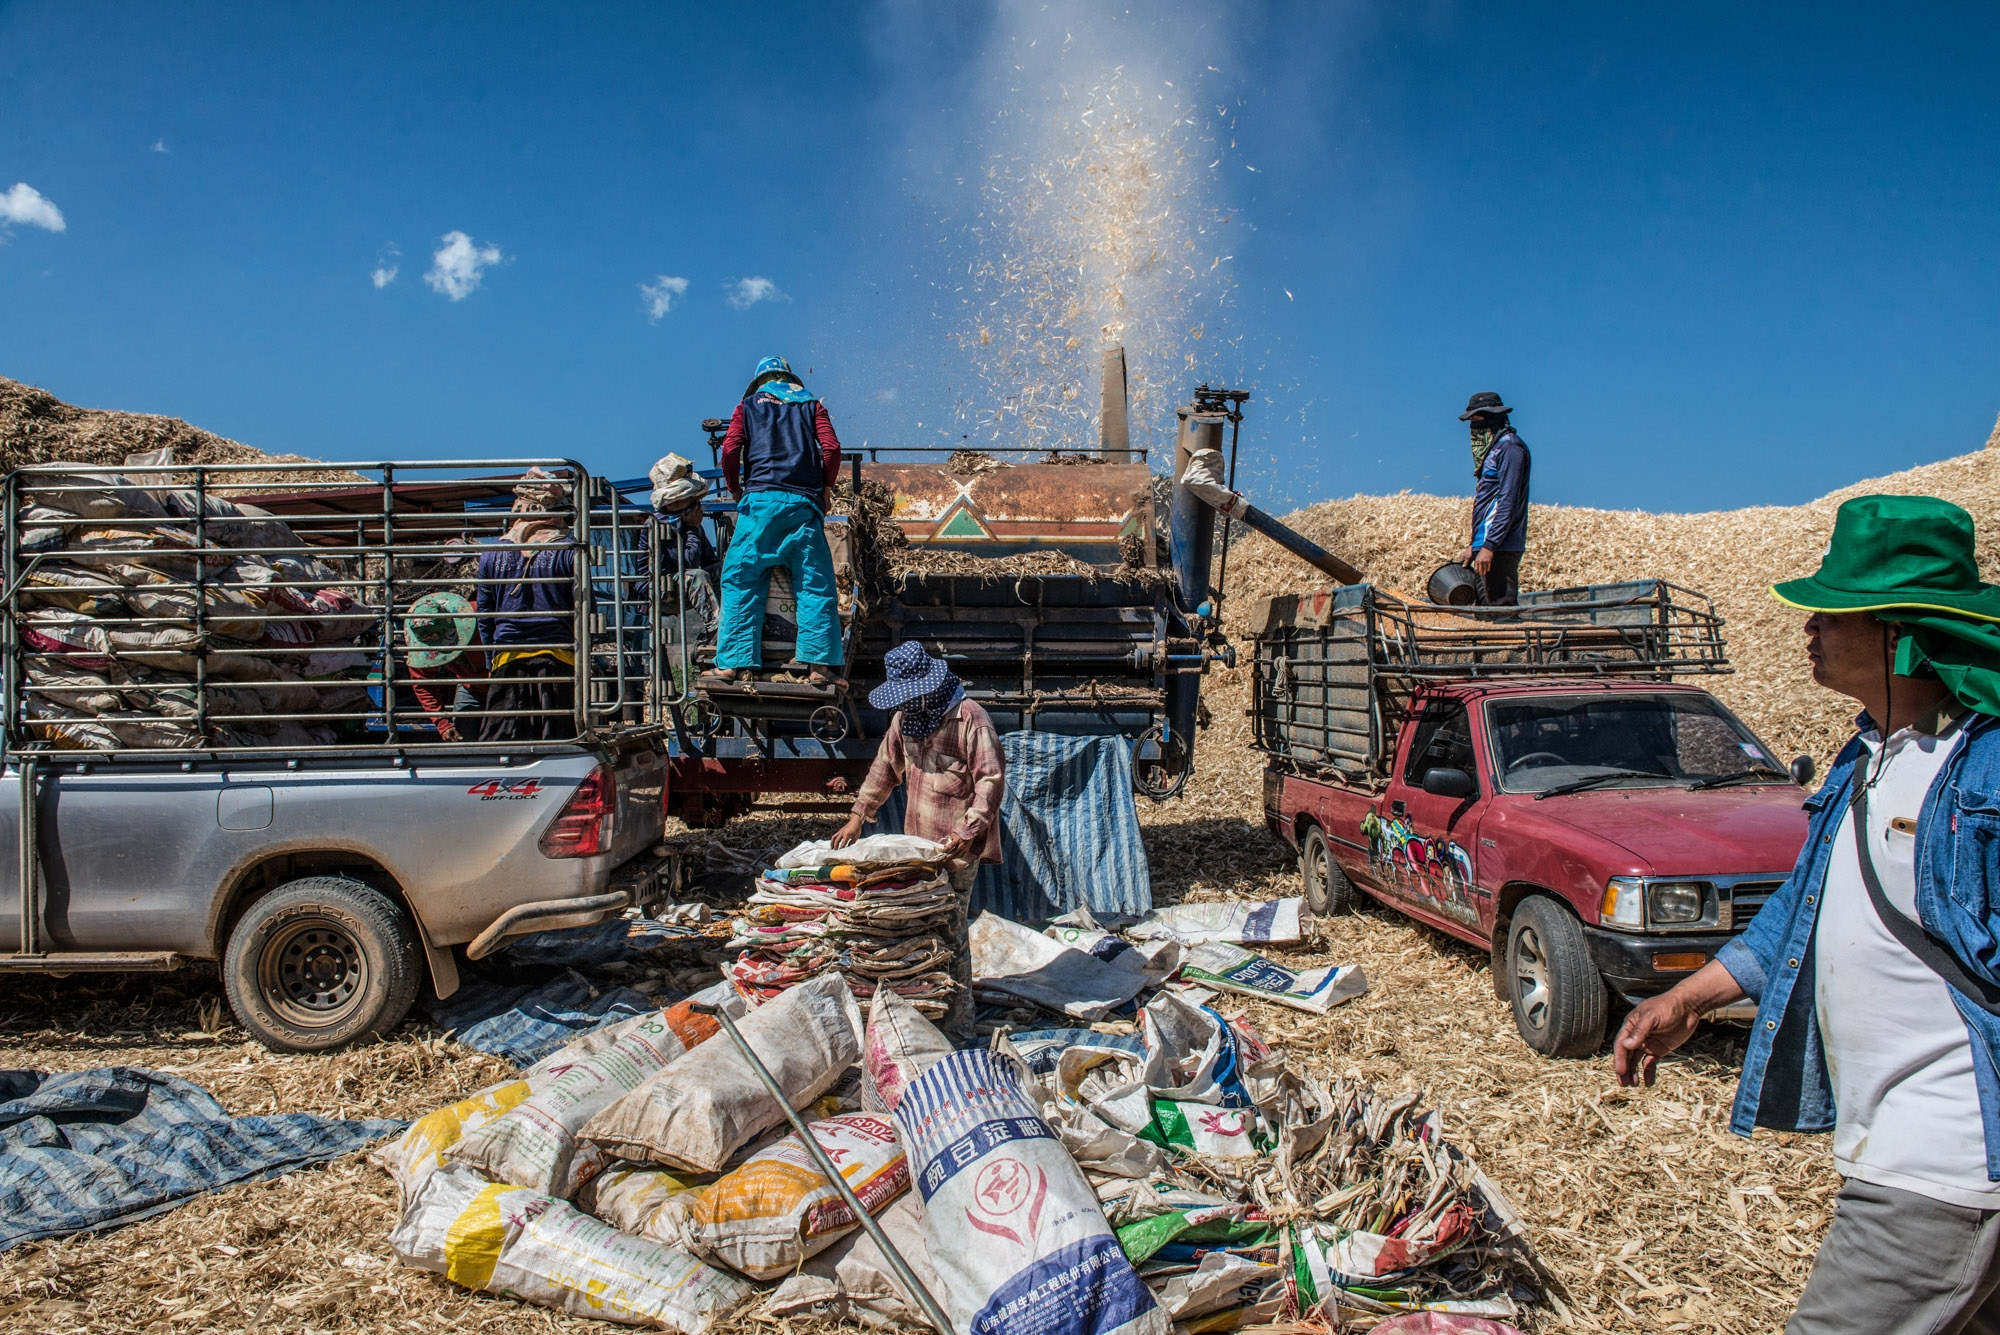 Farmers are milling corns after harvesting. They are the one who's been blamed for causing air pollution in the city in the smoke crises period in Northern Thailand.